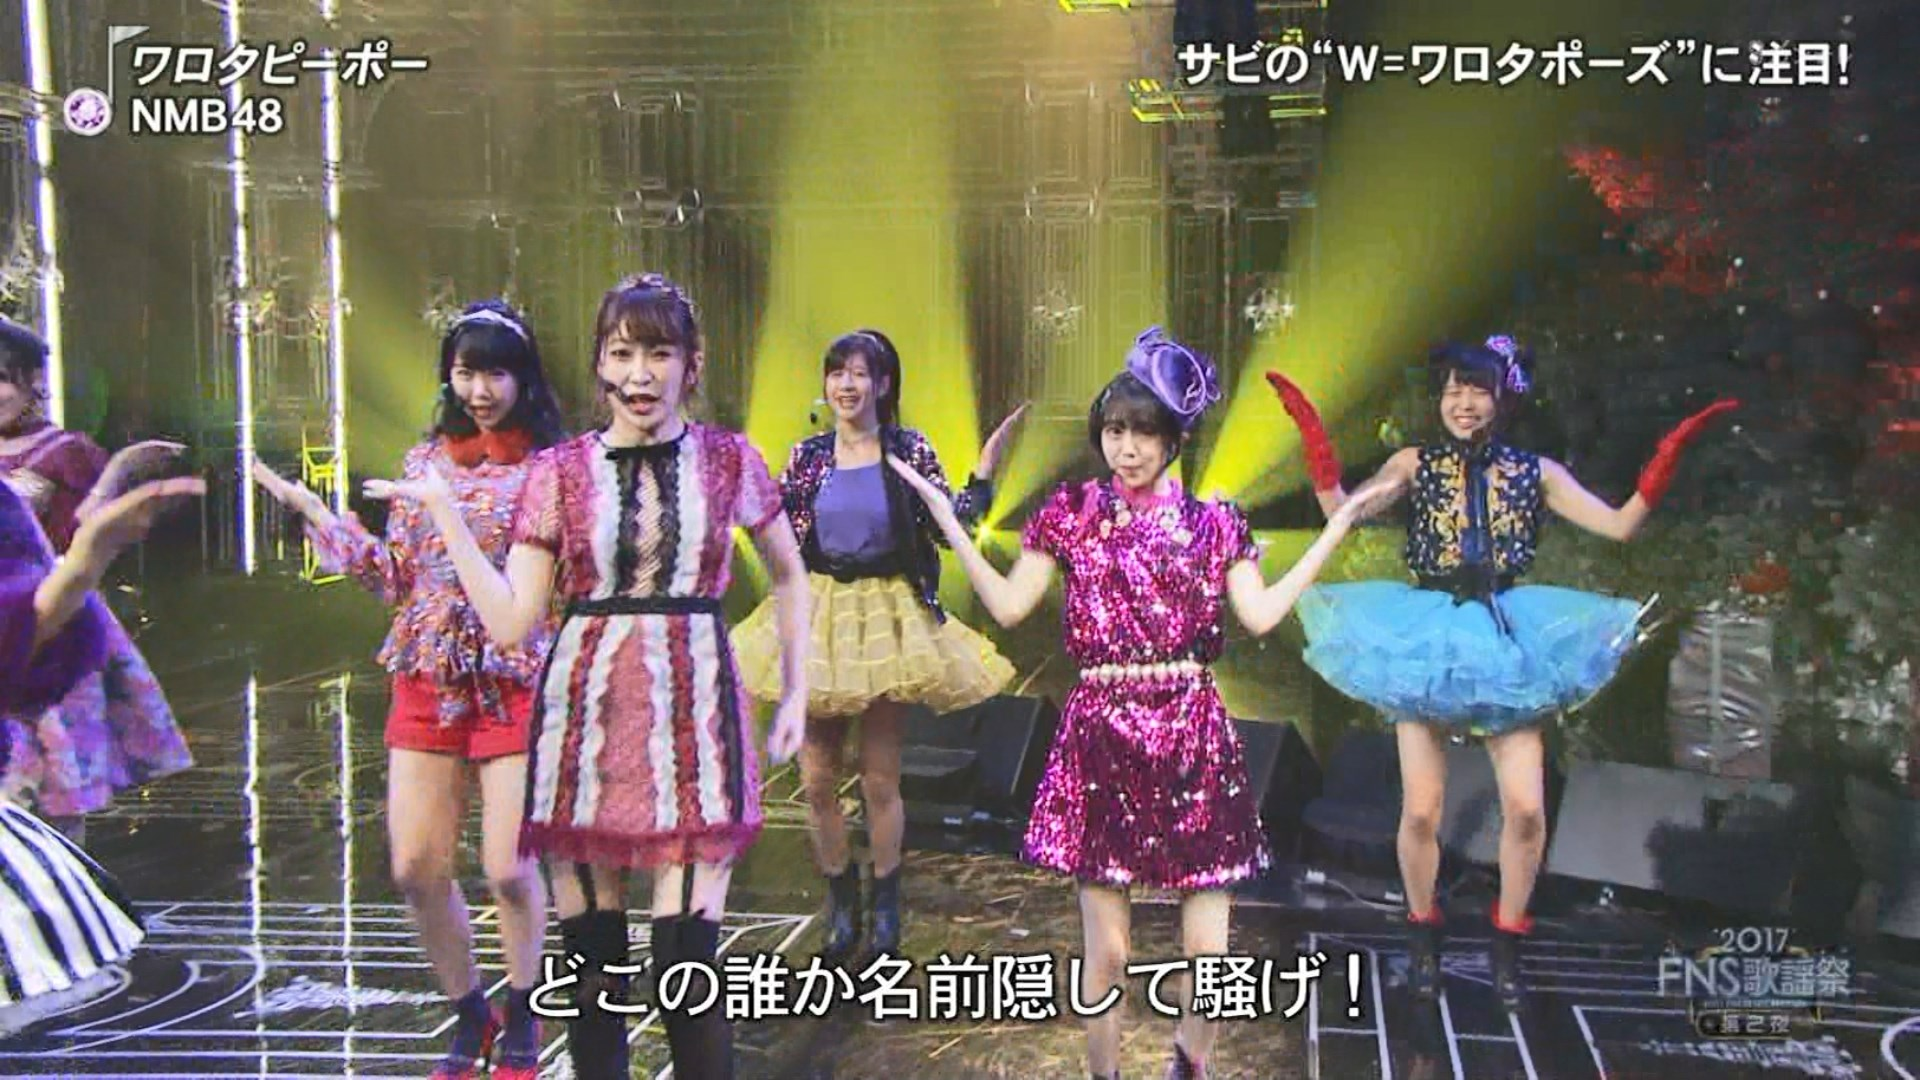 2017FNS歌謡祭第2夜・NMB48ワロタピーポーキャプ-058